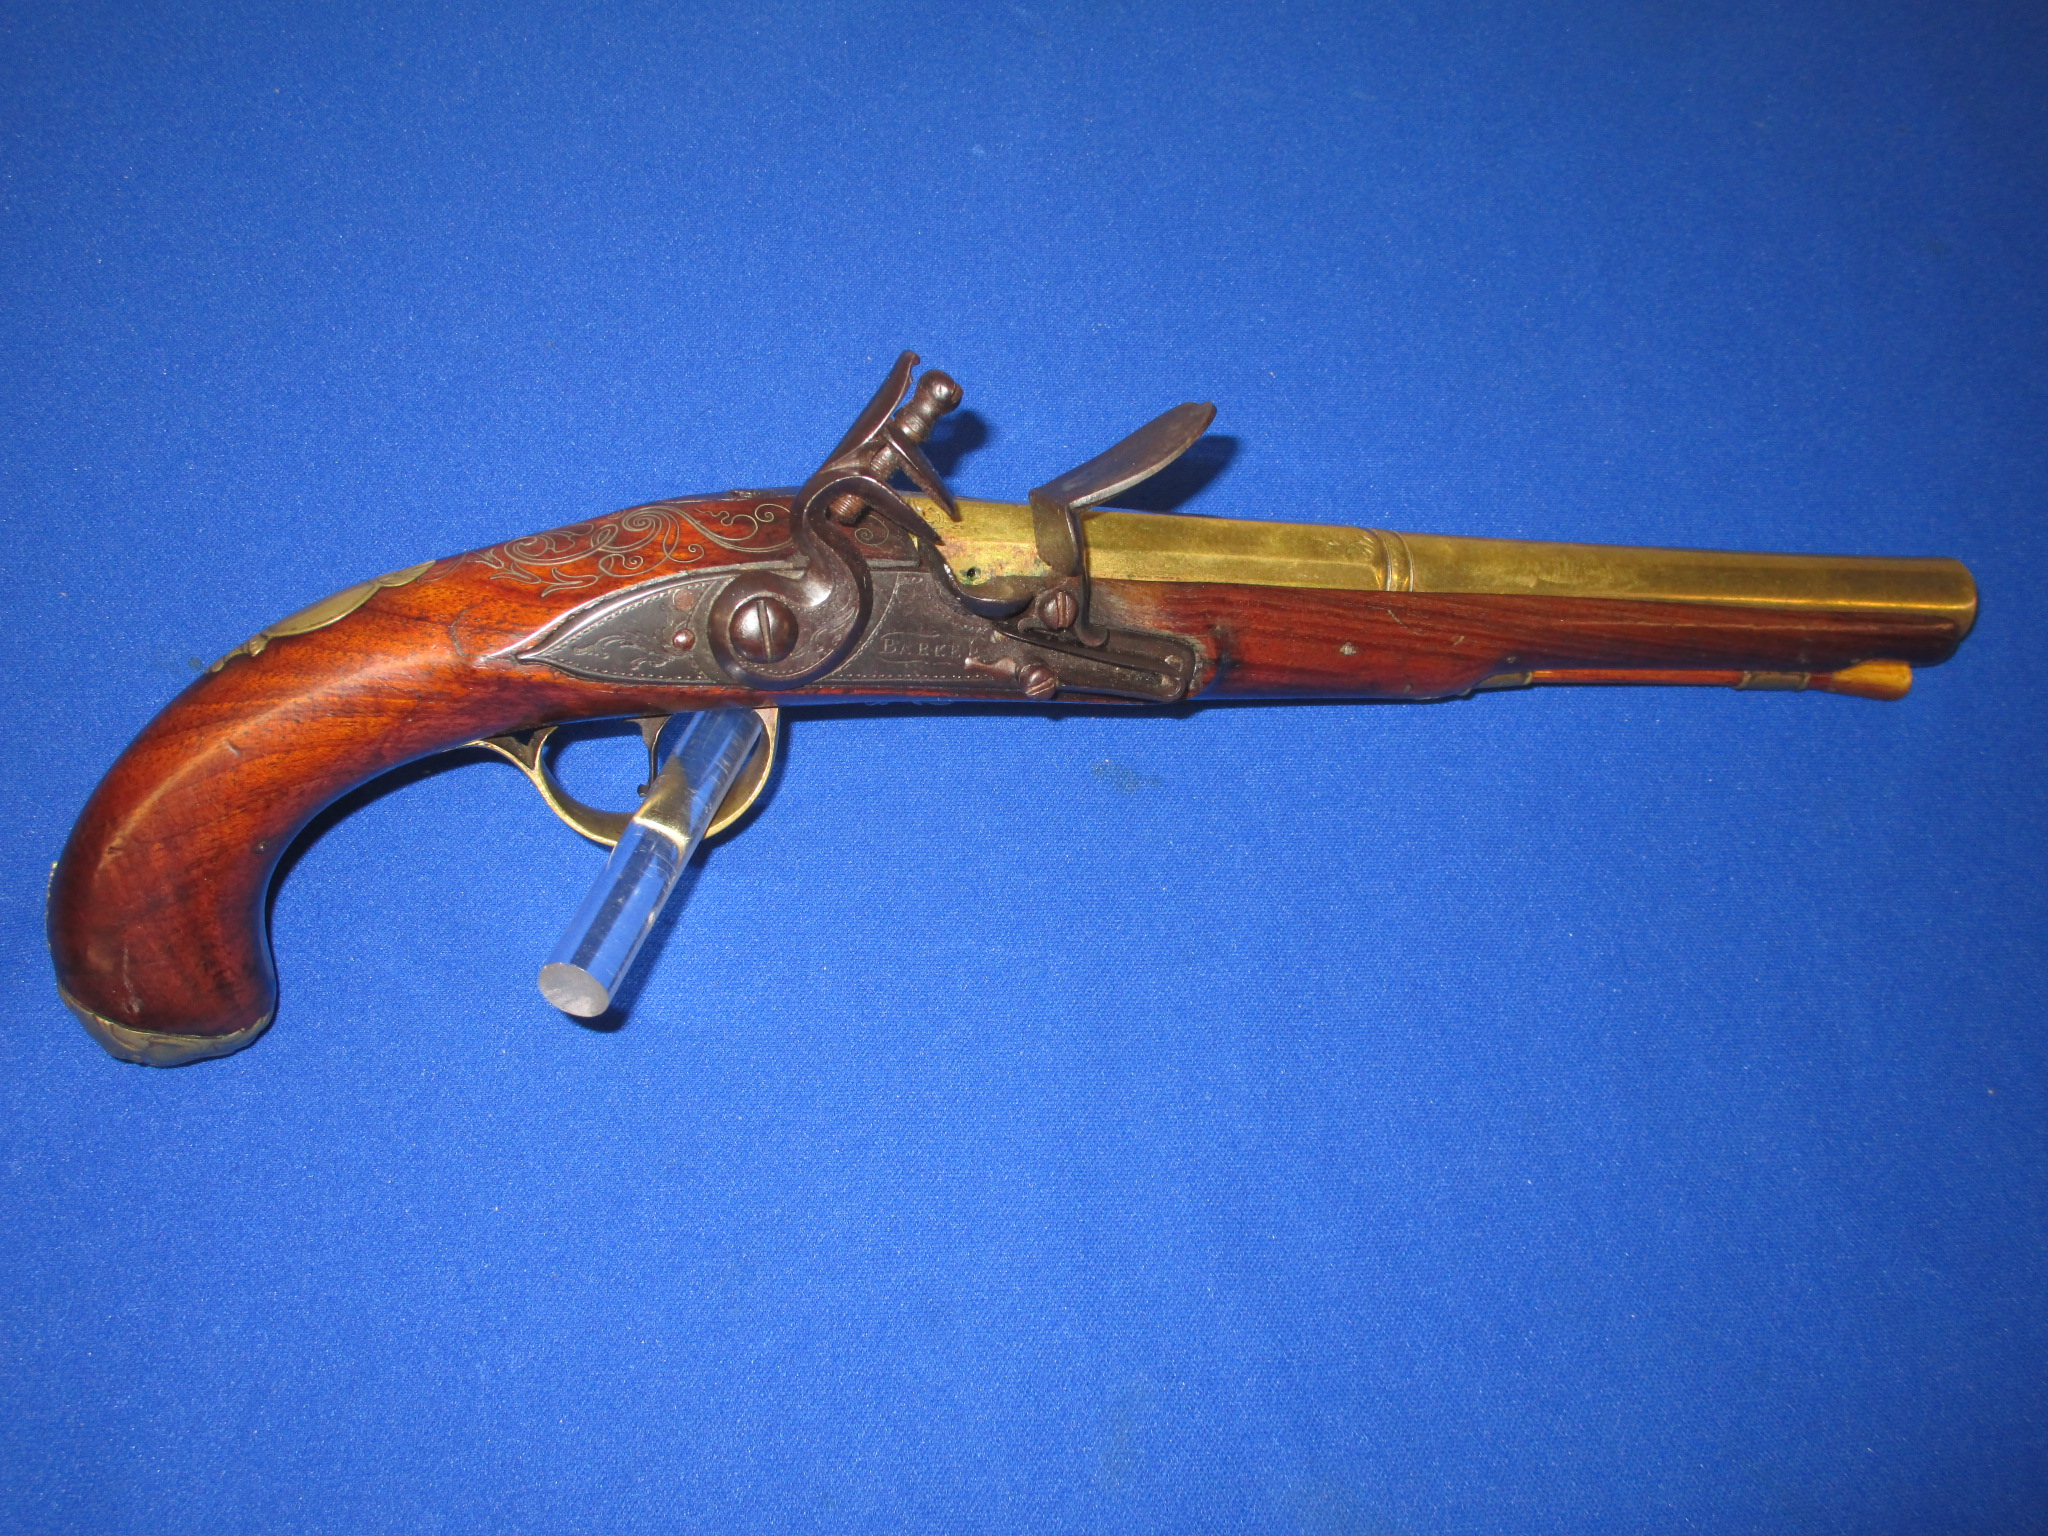 A SCARCE REVOLUTIONARY WAR PERIOD BRASS BARRELED OFFICERS